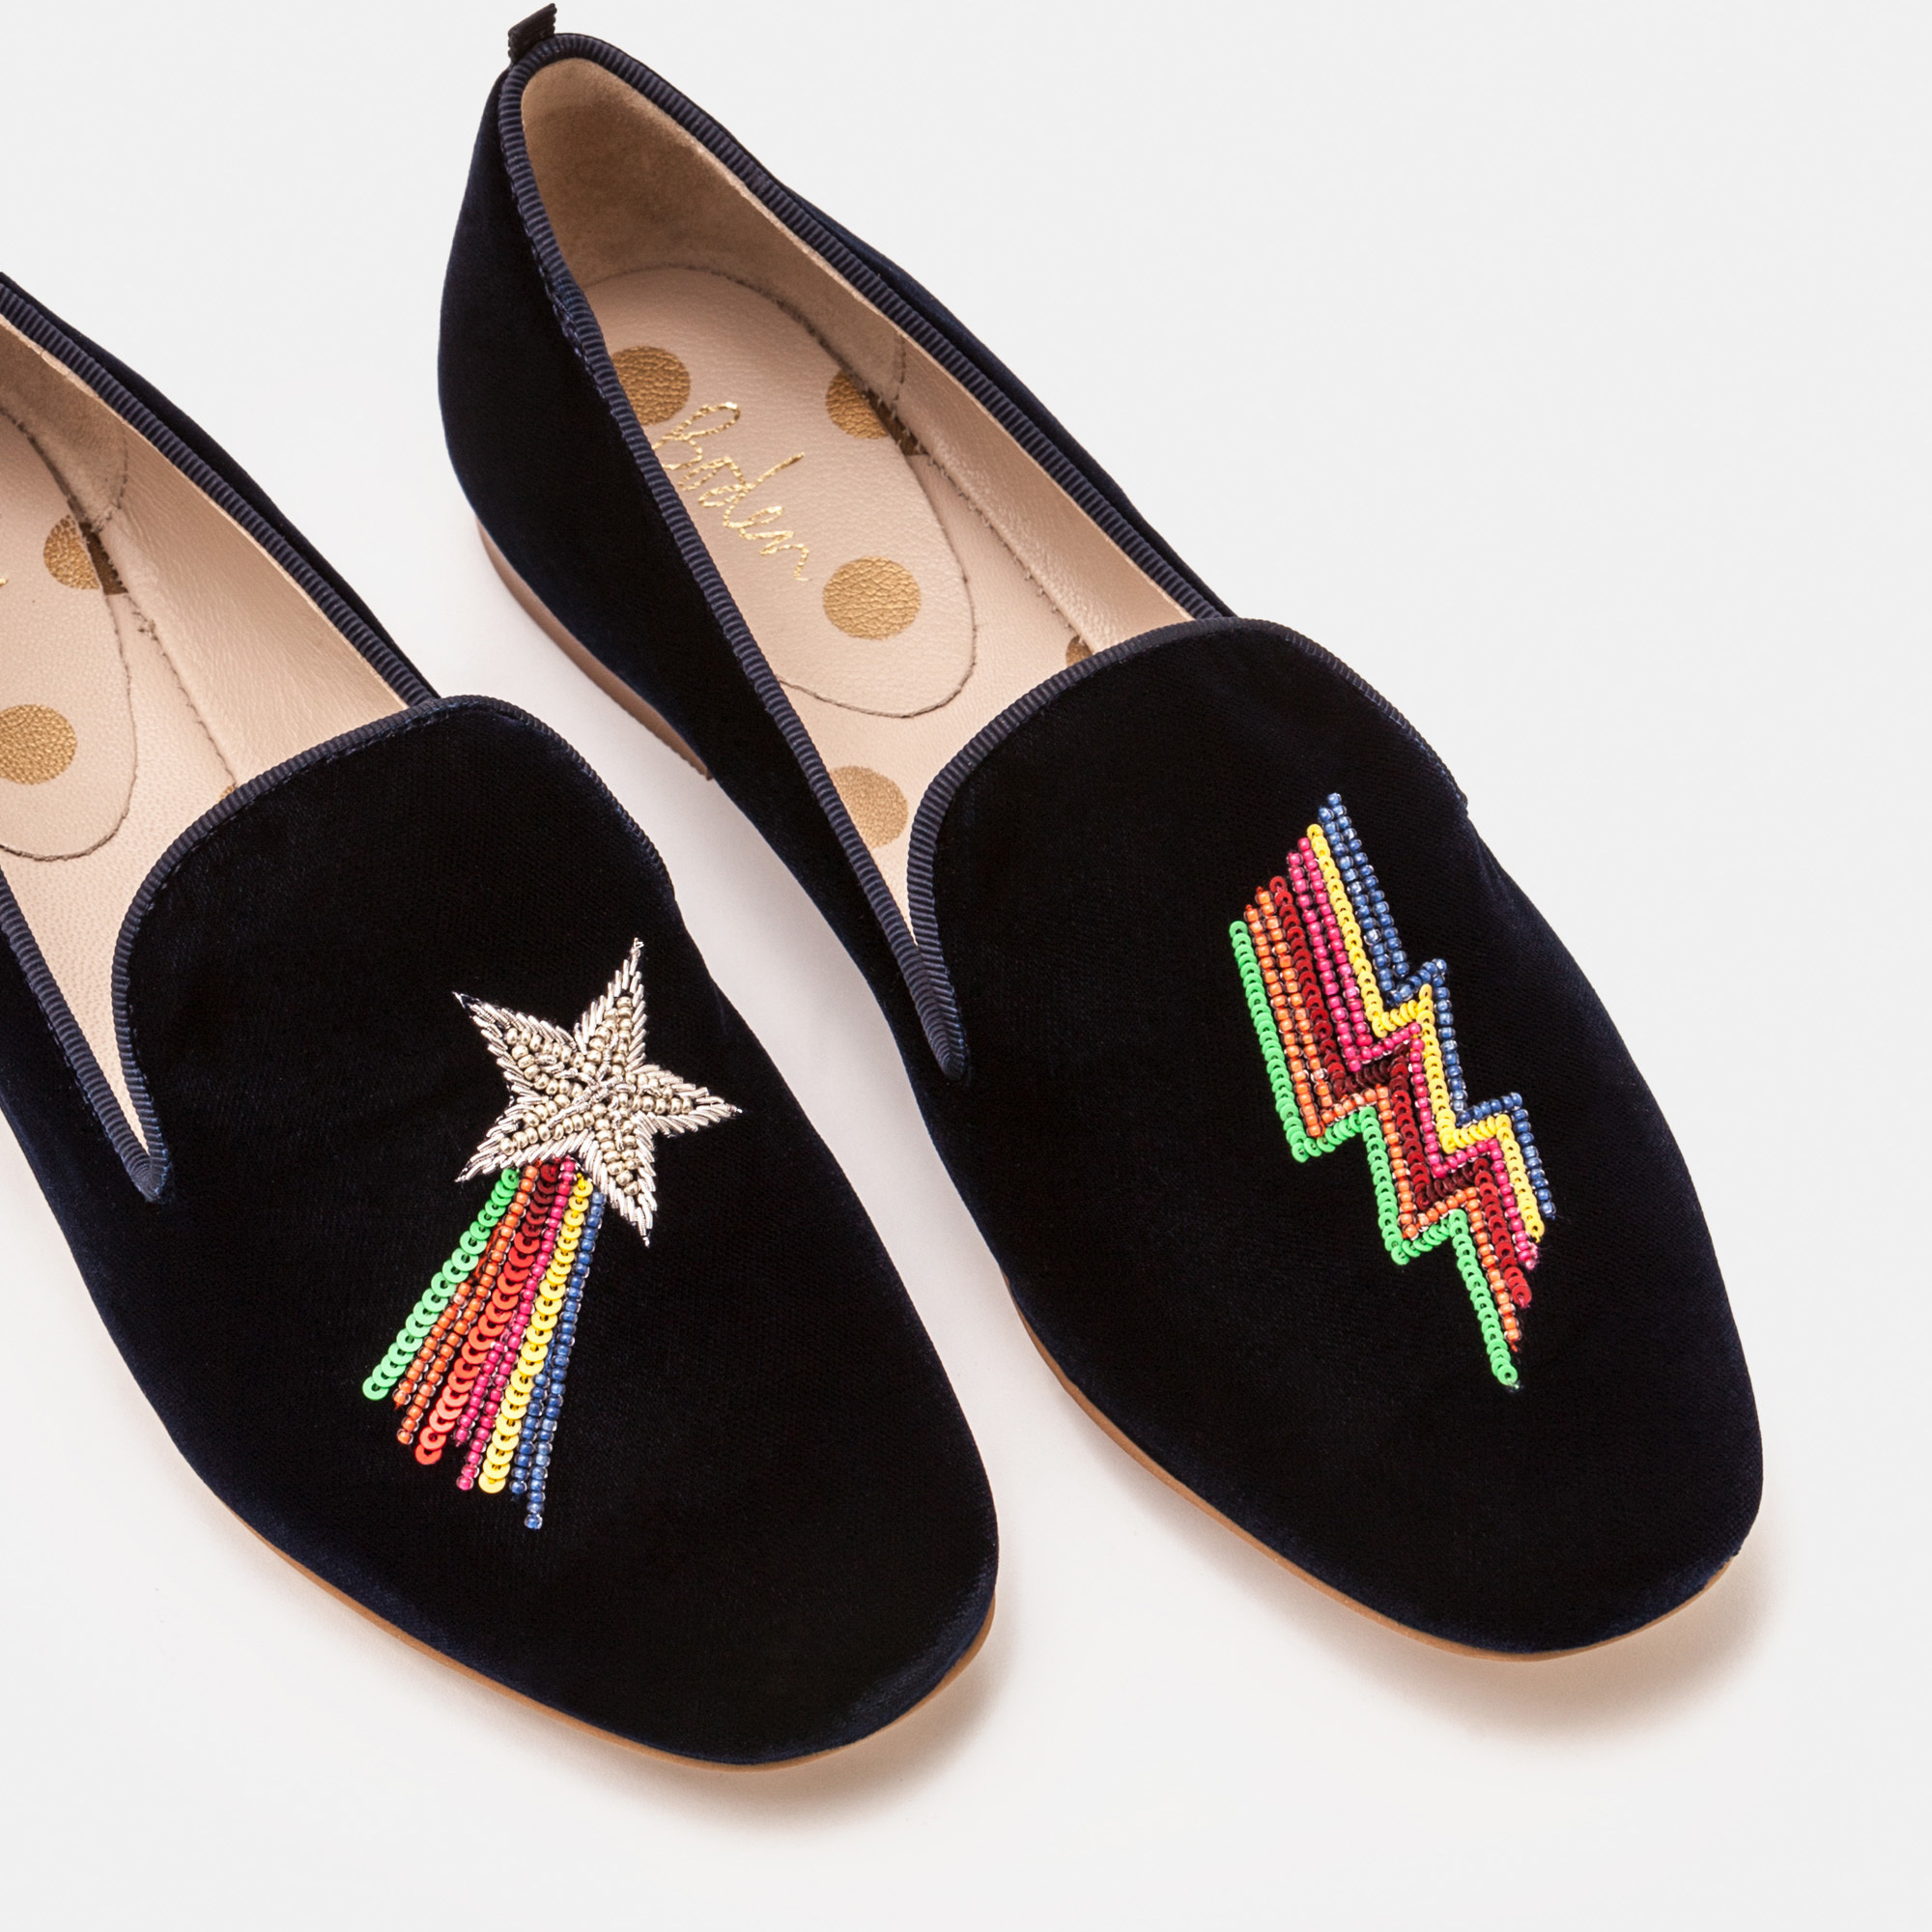 BODEN LUCY EMBELLISHED SLIPPERS